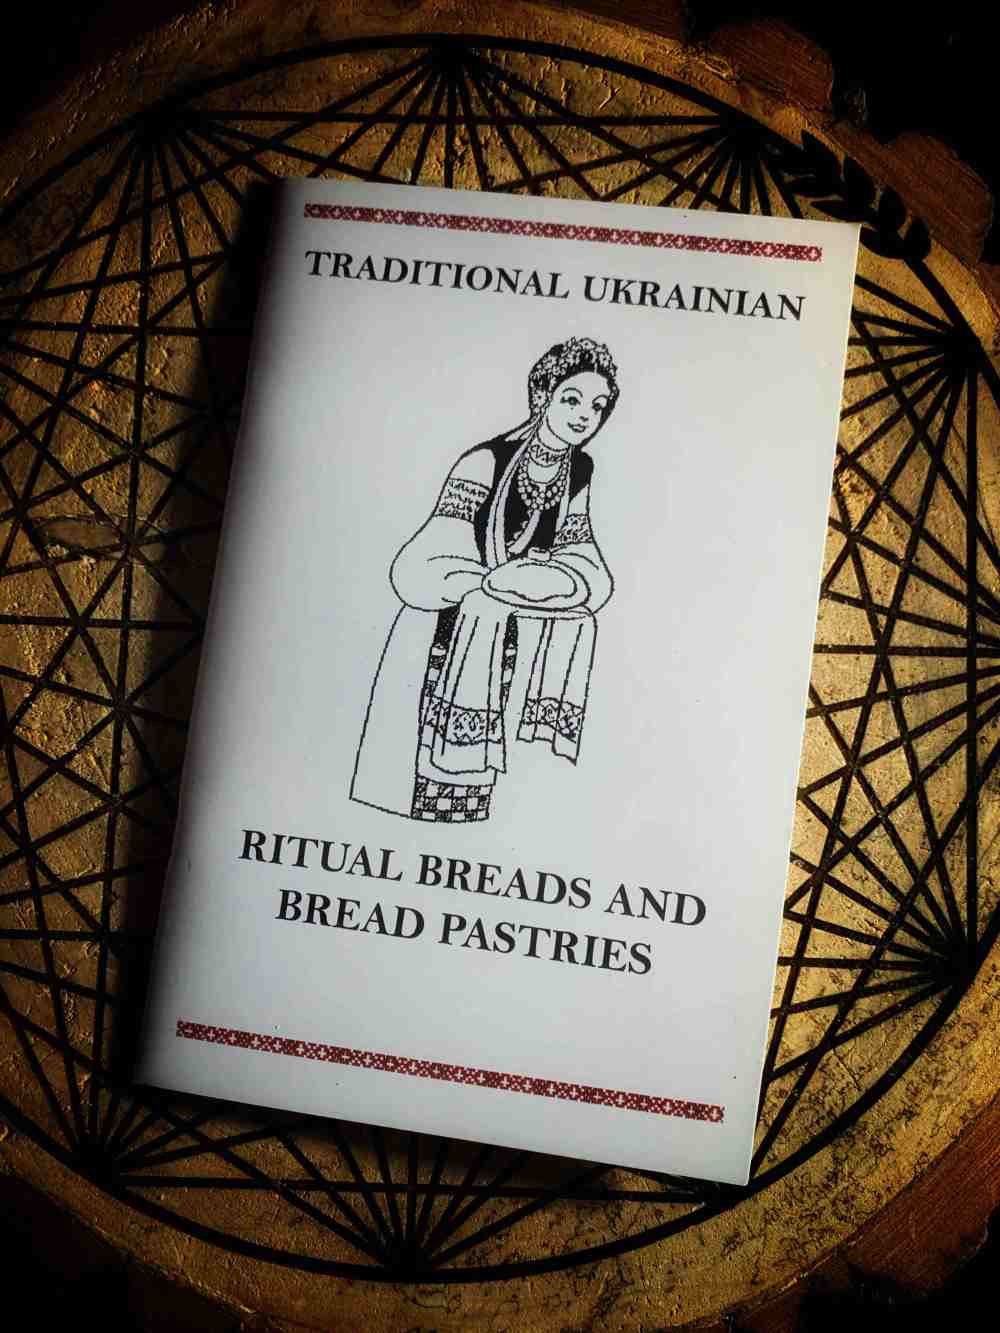 Traditional Ukrainian ritual breads and bread pastries